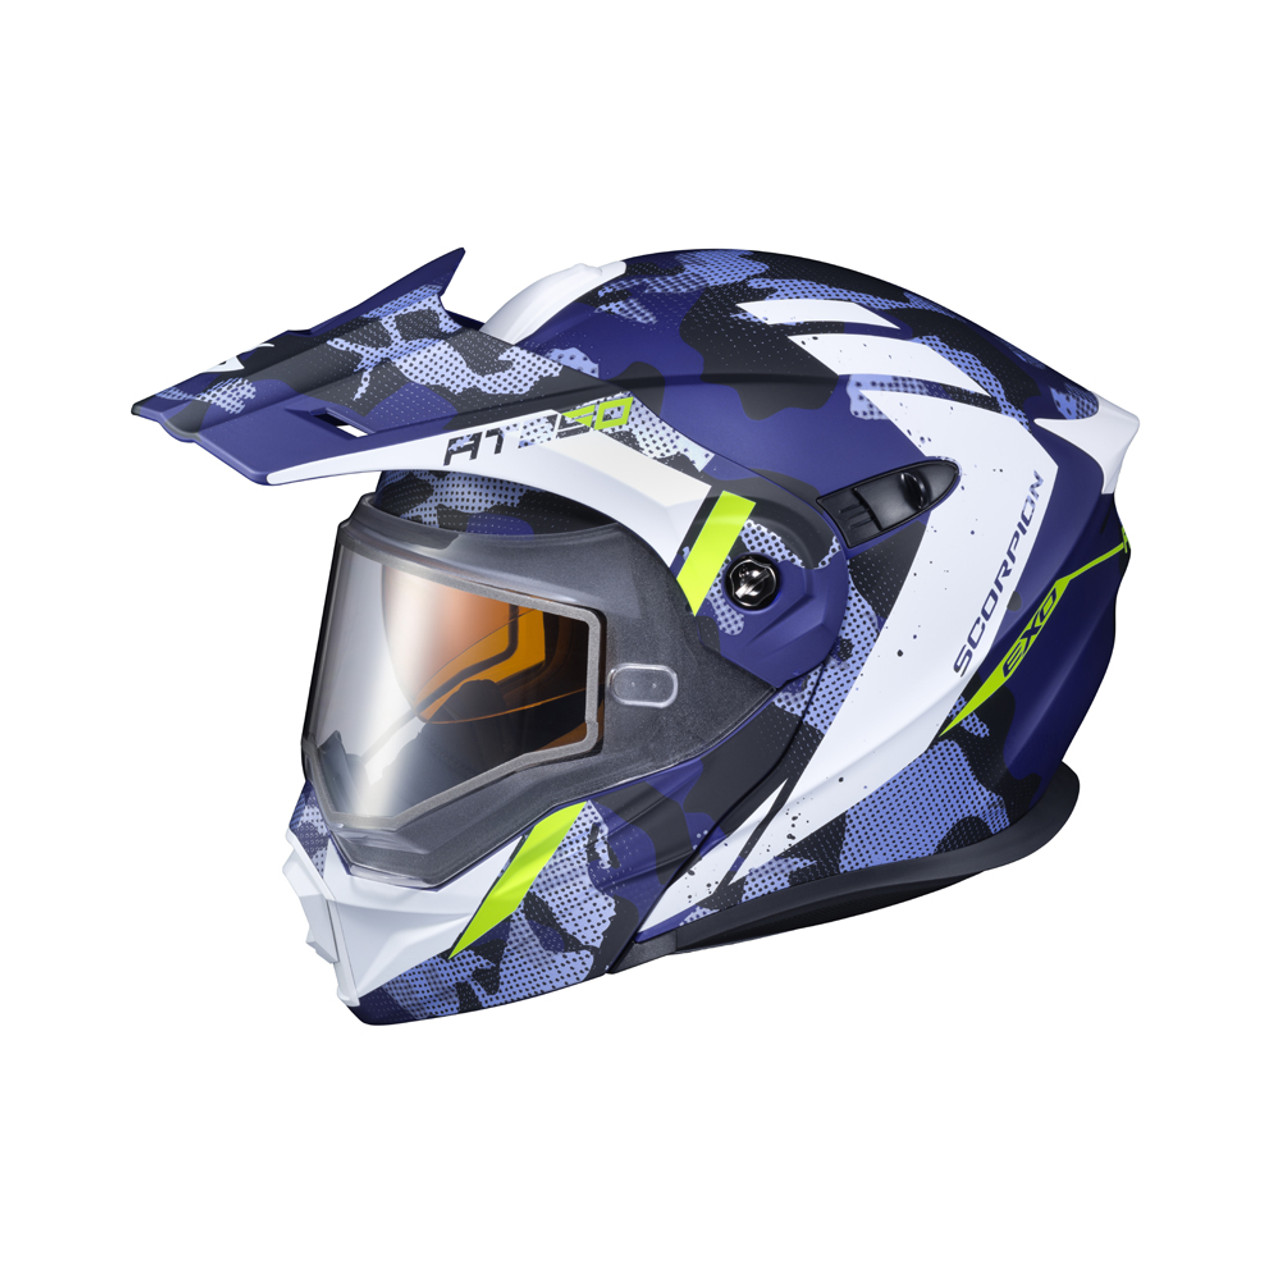 Scorpion Electric Shield Exo-AT950 Snow Motorcycle Helmet Accessories Clear//One Size